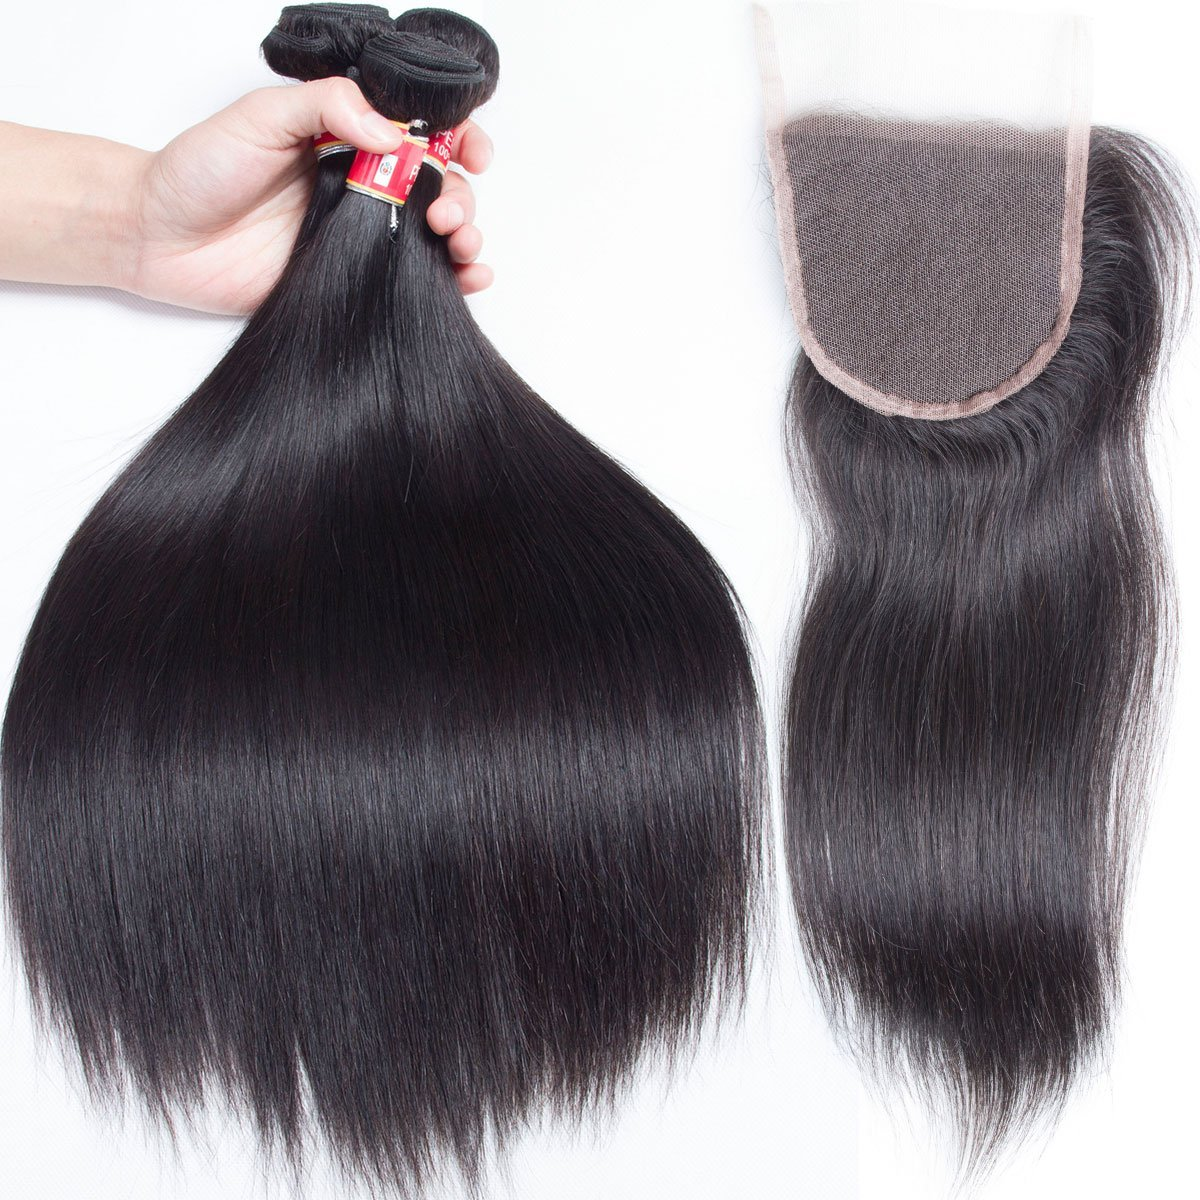 Cheap 10 Inch Closure Find 10 Inch Closure Deals On Line At Alibaba